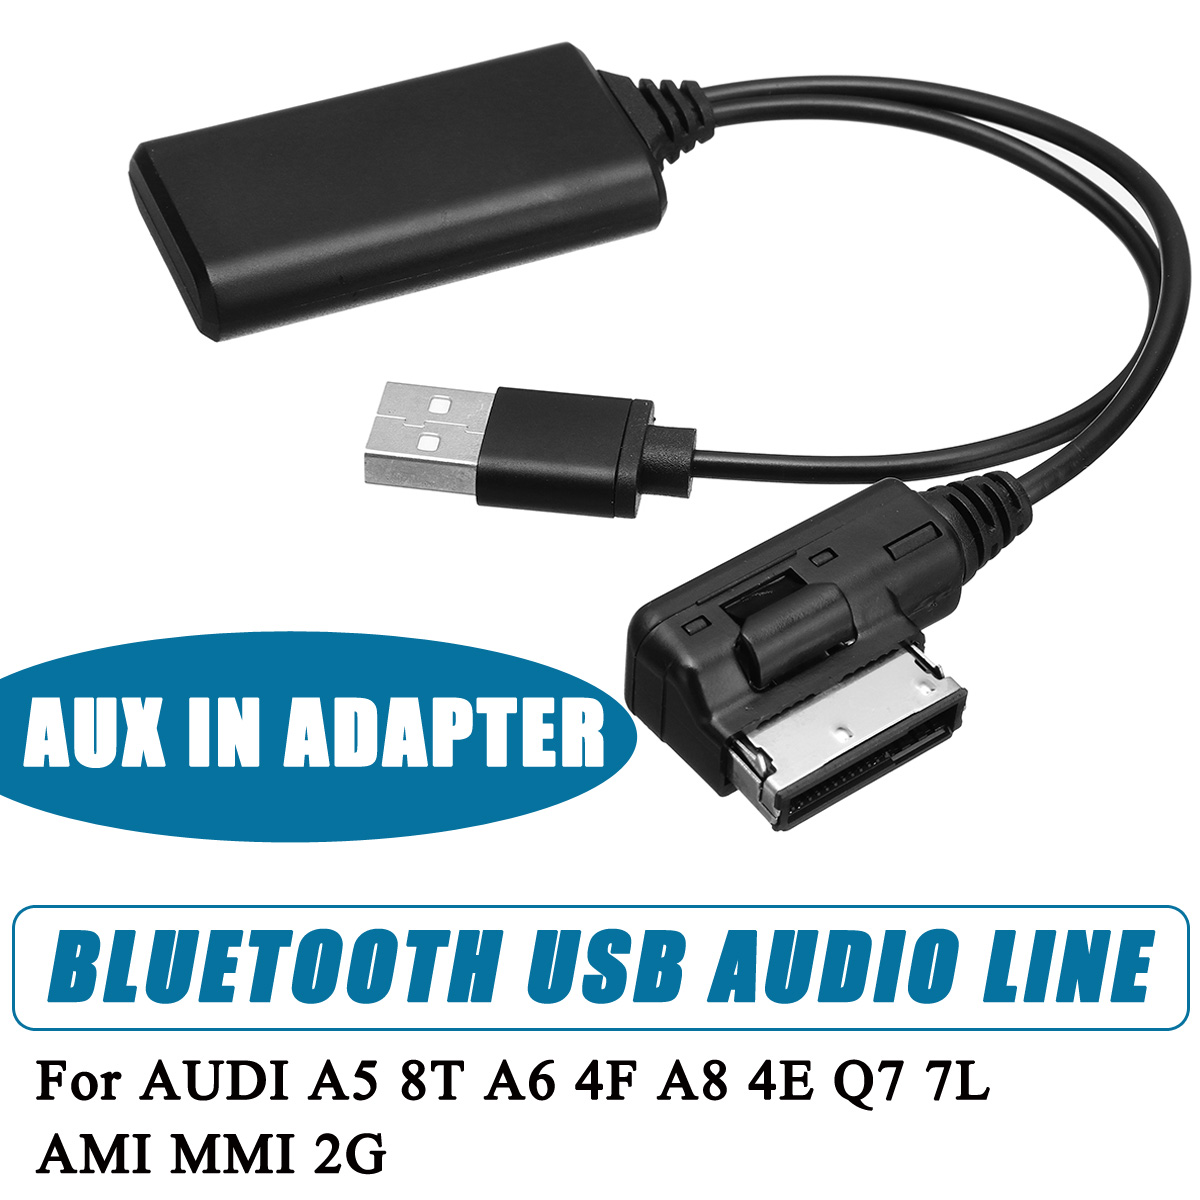 Smartphones Bluetooth USB AUX In Adapter Cable Fit For AUDI A5 8T A6 4F A8 4E Q7